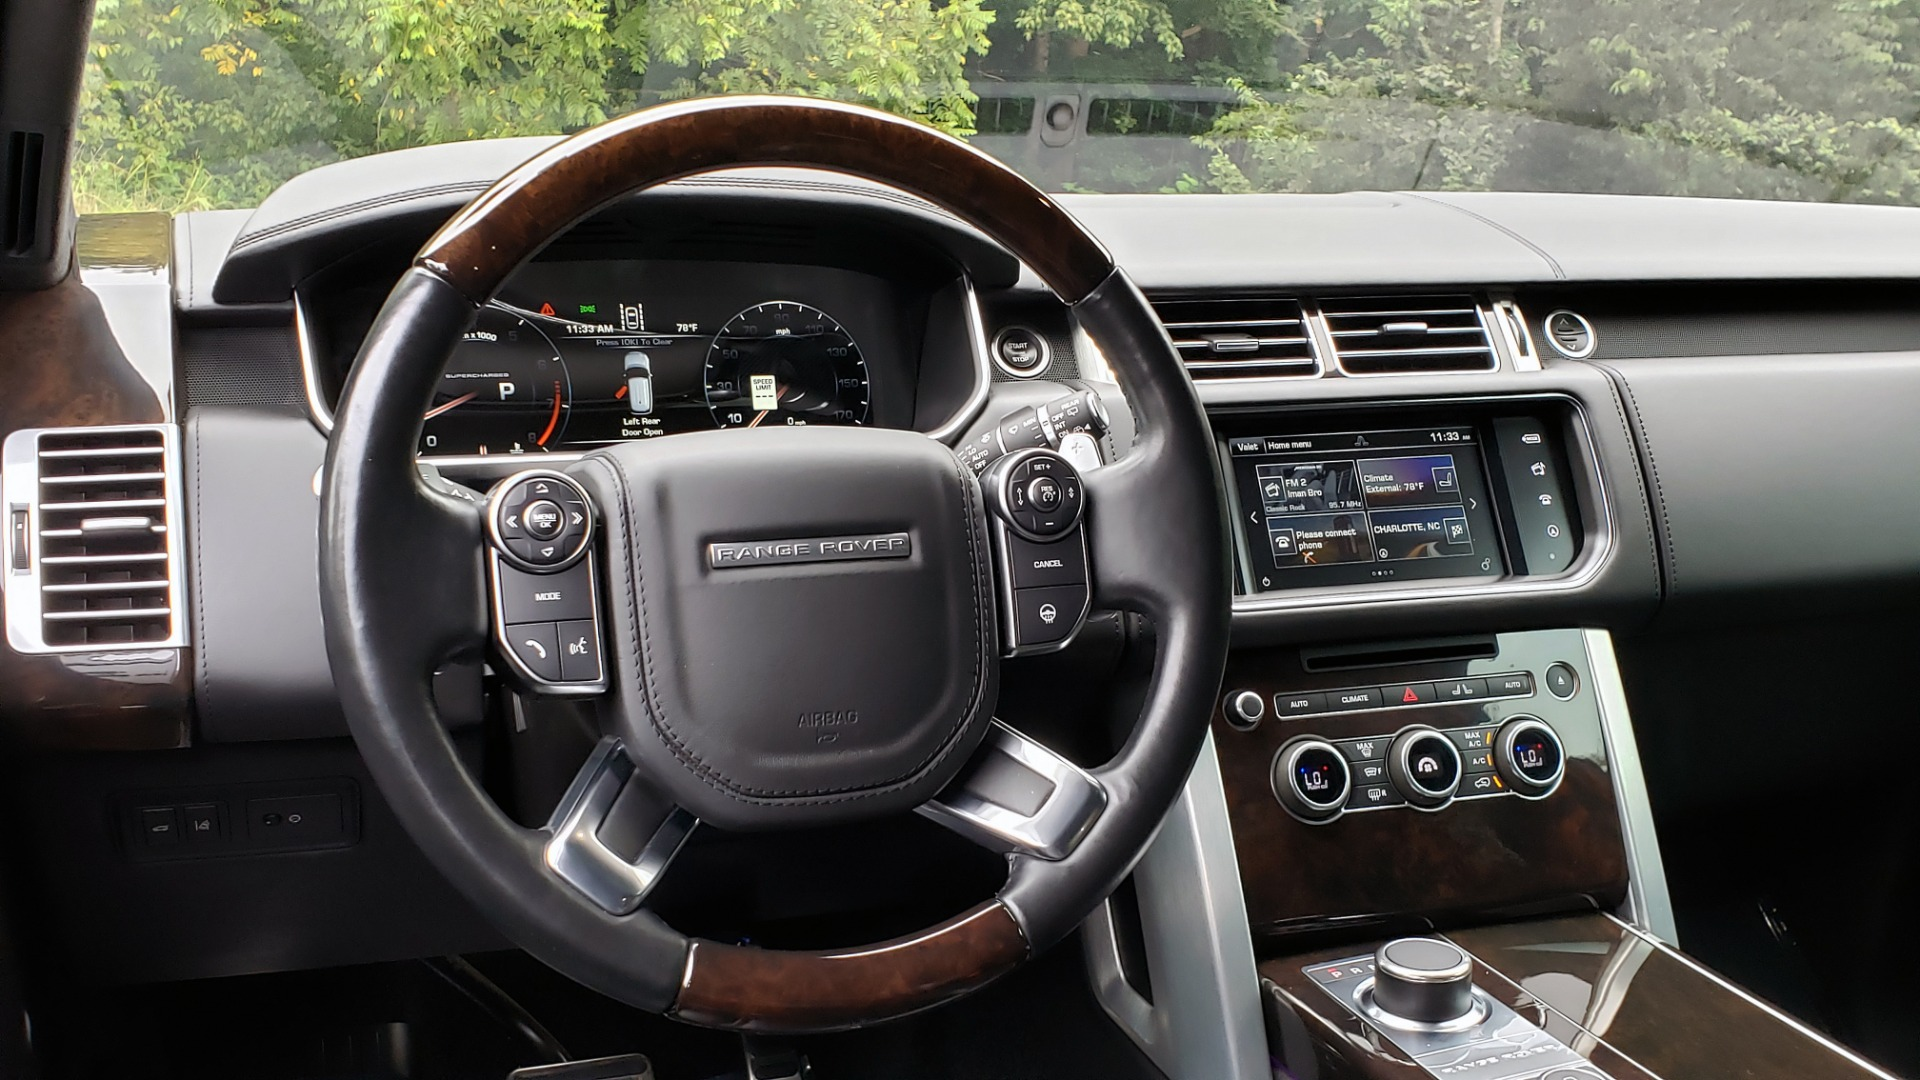 Used 2016 Land Rover RANGE ROVER AUTOBIOGRAPHY / SC-V8 / LWB / PANO-ROOF / NAV / MERIDIAN / ENT / REARVIEW for sale $71,495 at Formula Imports in Charlotte NC 28227 49